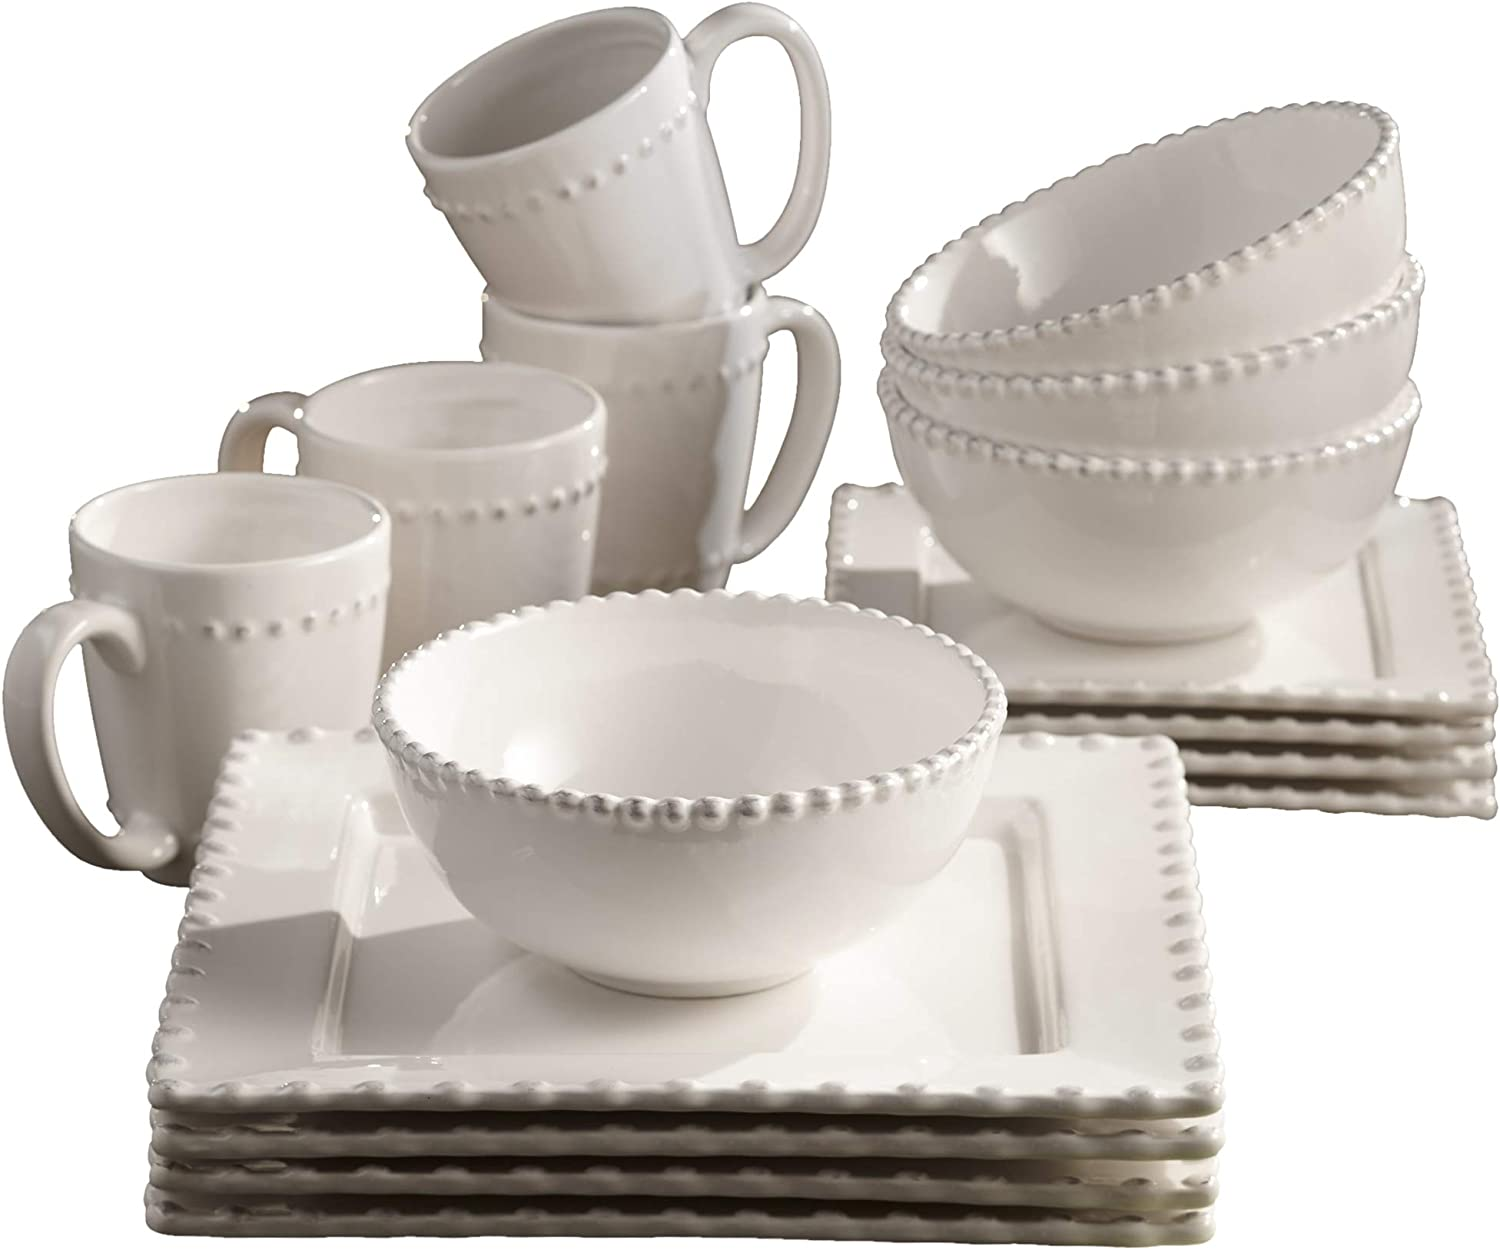 American Atelier 1567023-RB Bianca Bead 16-Piece Ceramic Square Dinnerware Set -4 Dinner & 4 Salad Plates, 4 Bowls, 4 Mugs – Gift for Special Occasion, Party, or Birthday, White